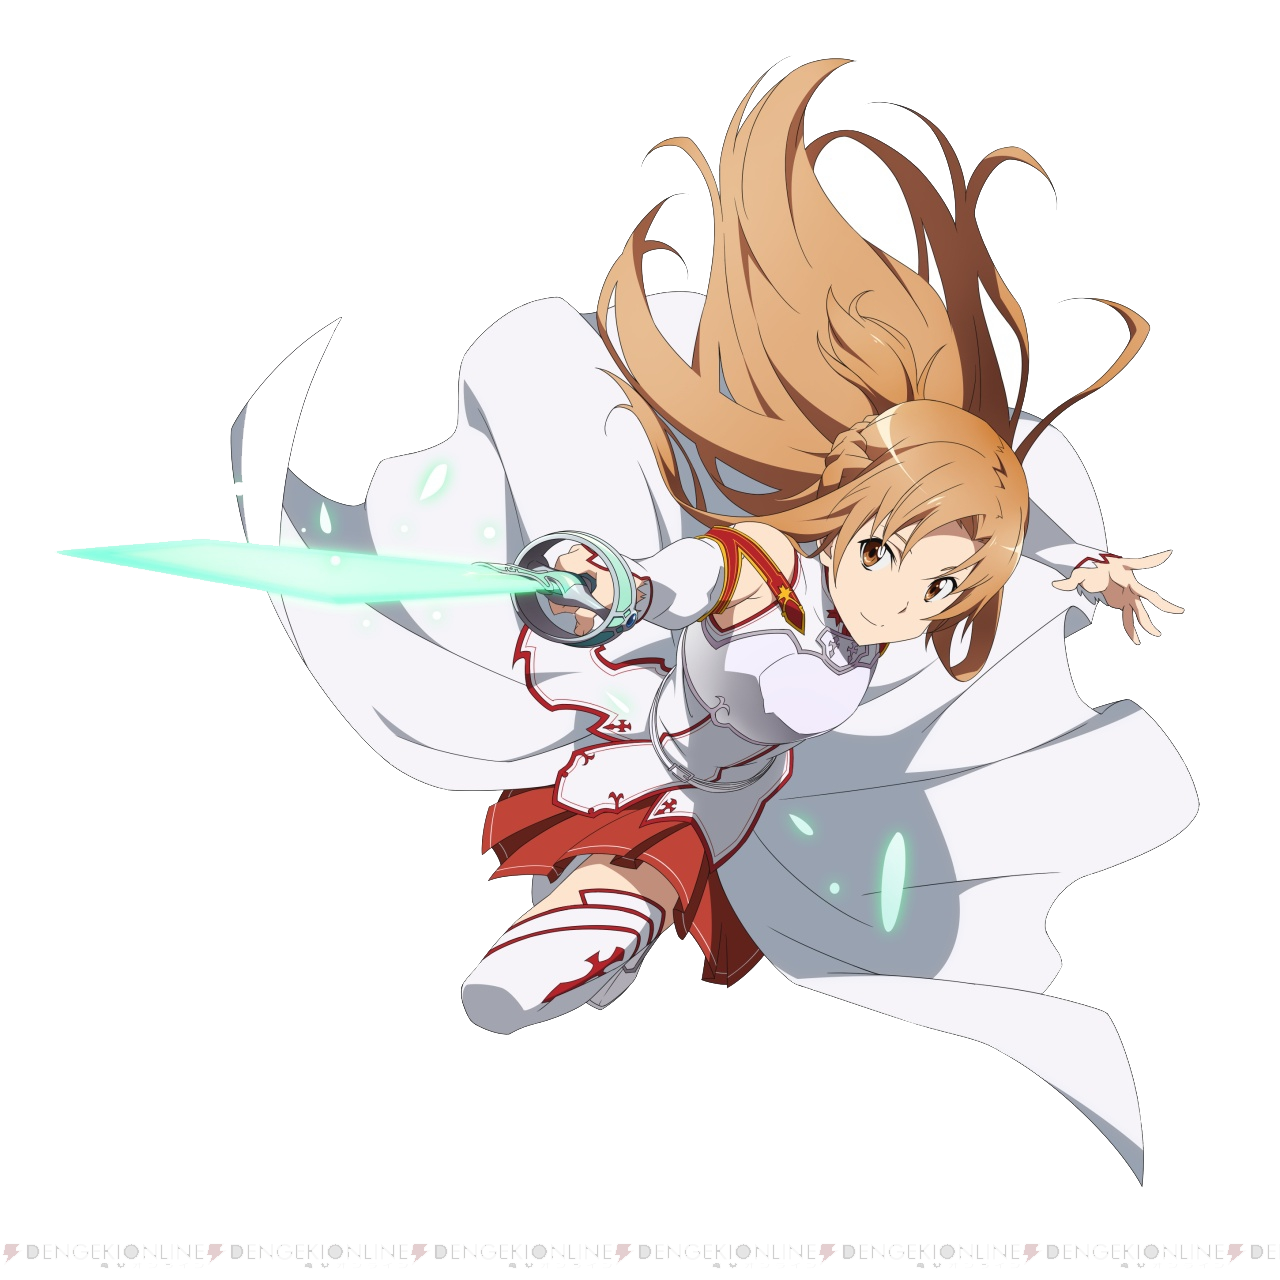 Asuna png mart. Anime clipart transparent background